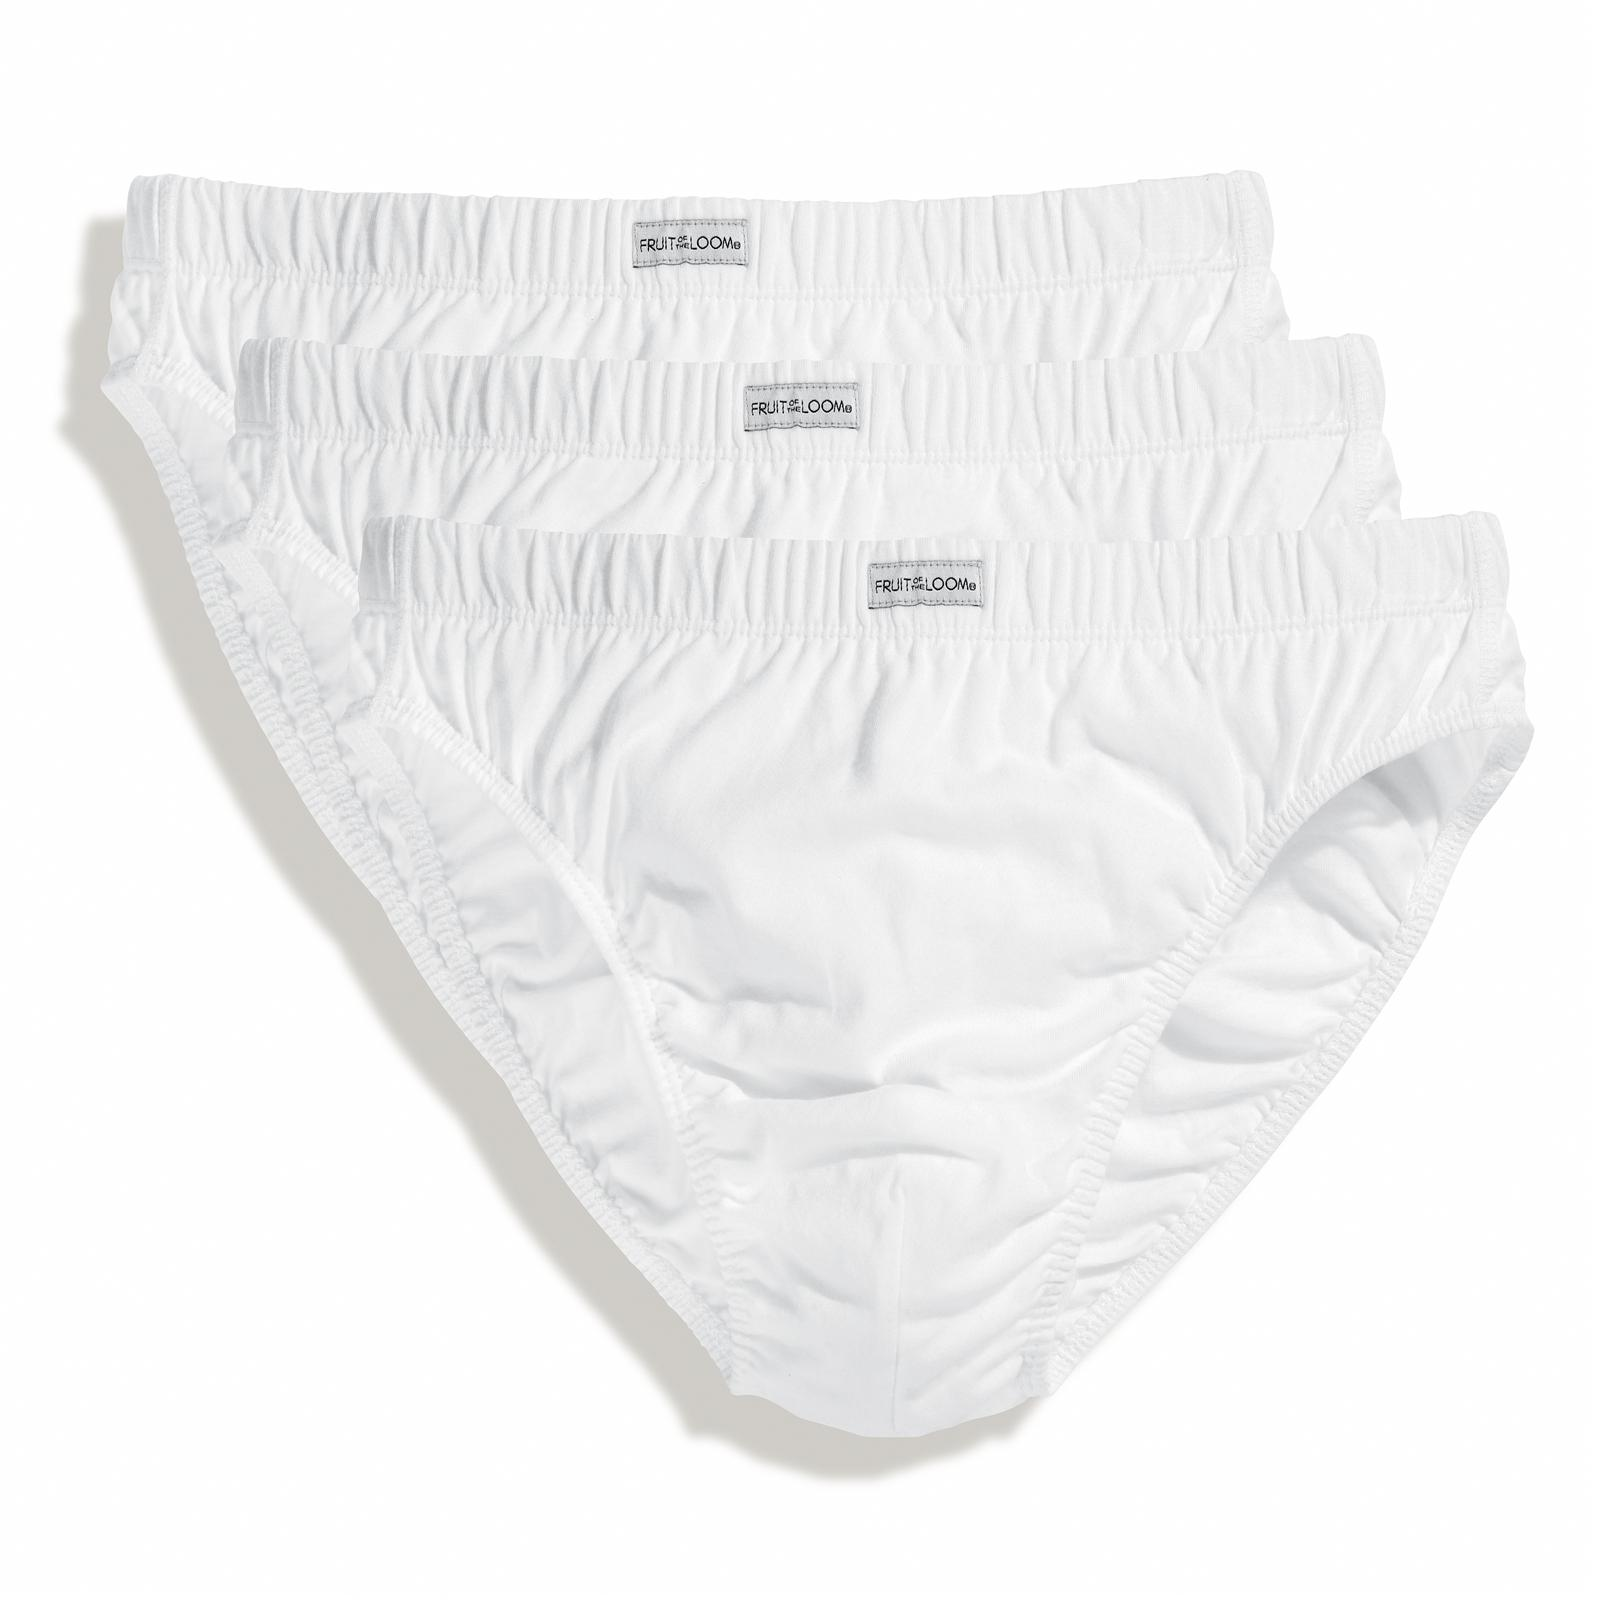 73e5fb79518f New Fruit of the Loom Mens Classic Cotton Slip Underwear 3 Pack 4 ...